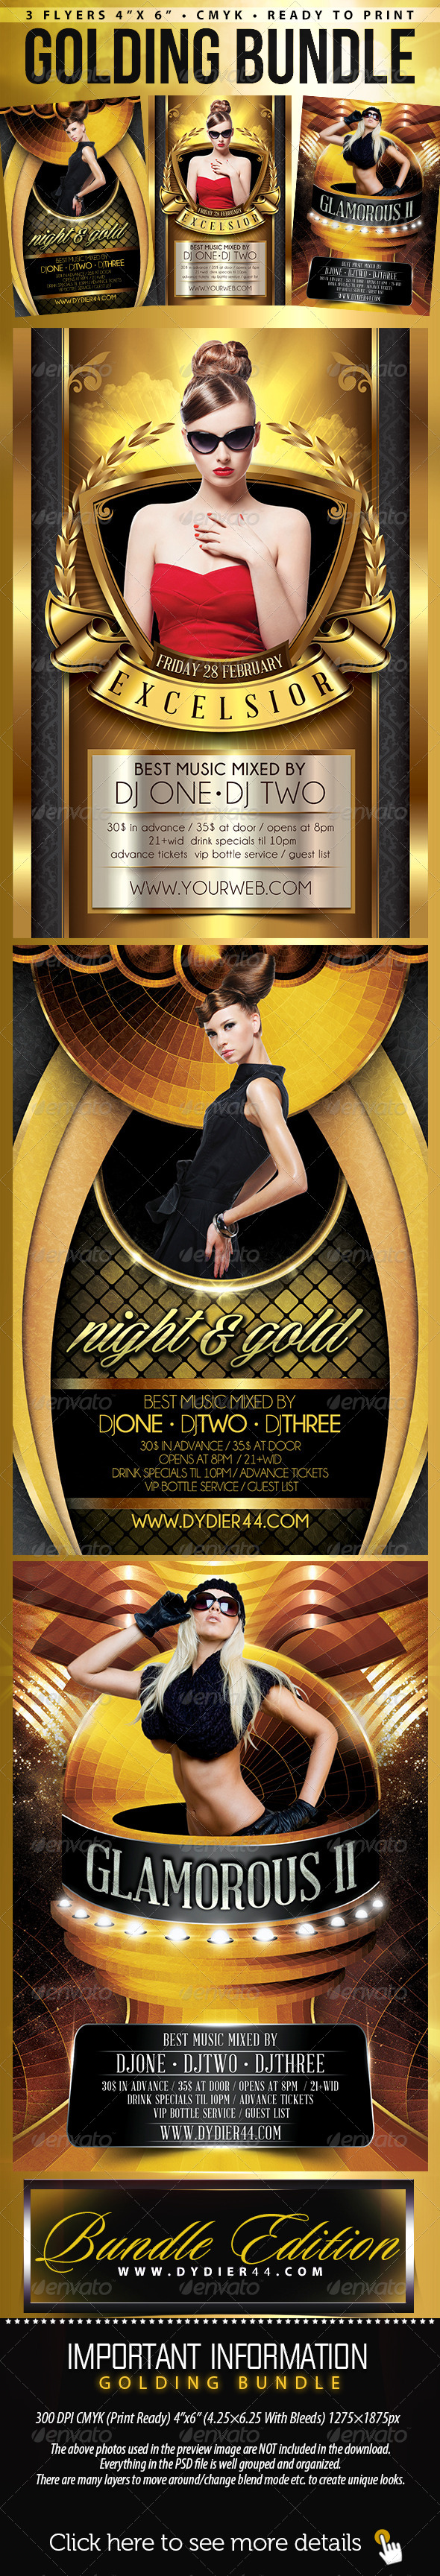 Golding Bundle (Flyer Template 4x6) - Clubs & Parties Events